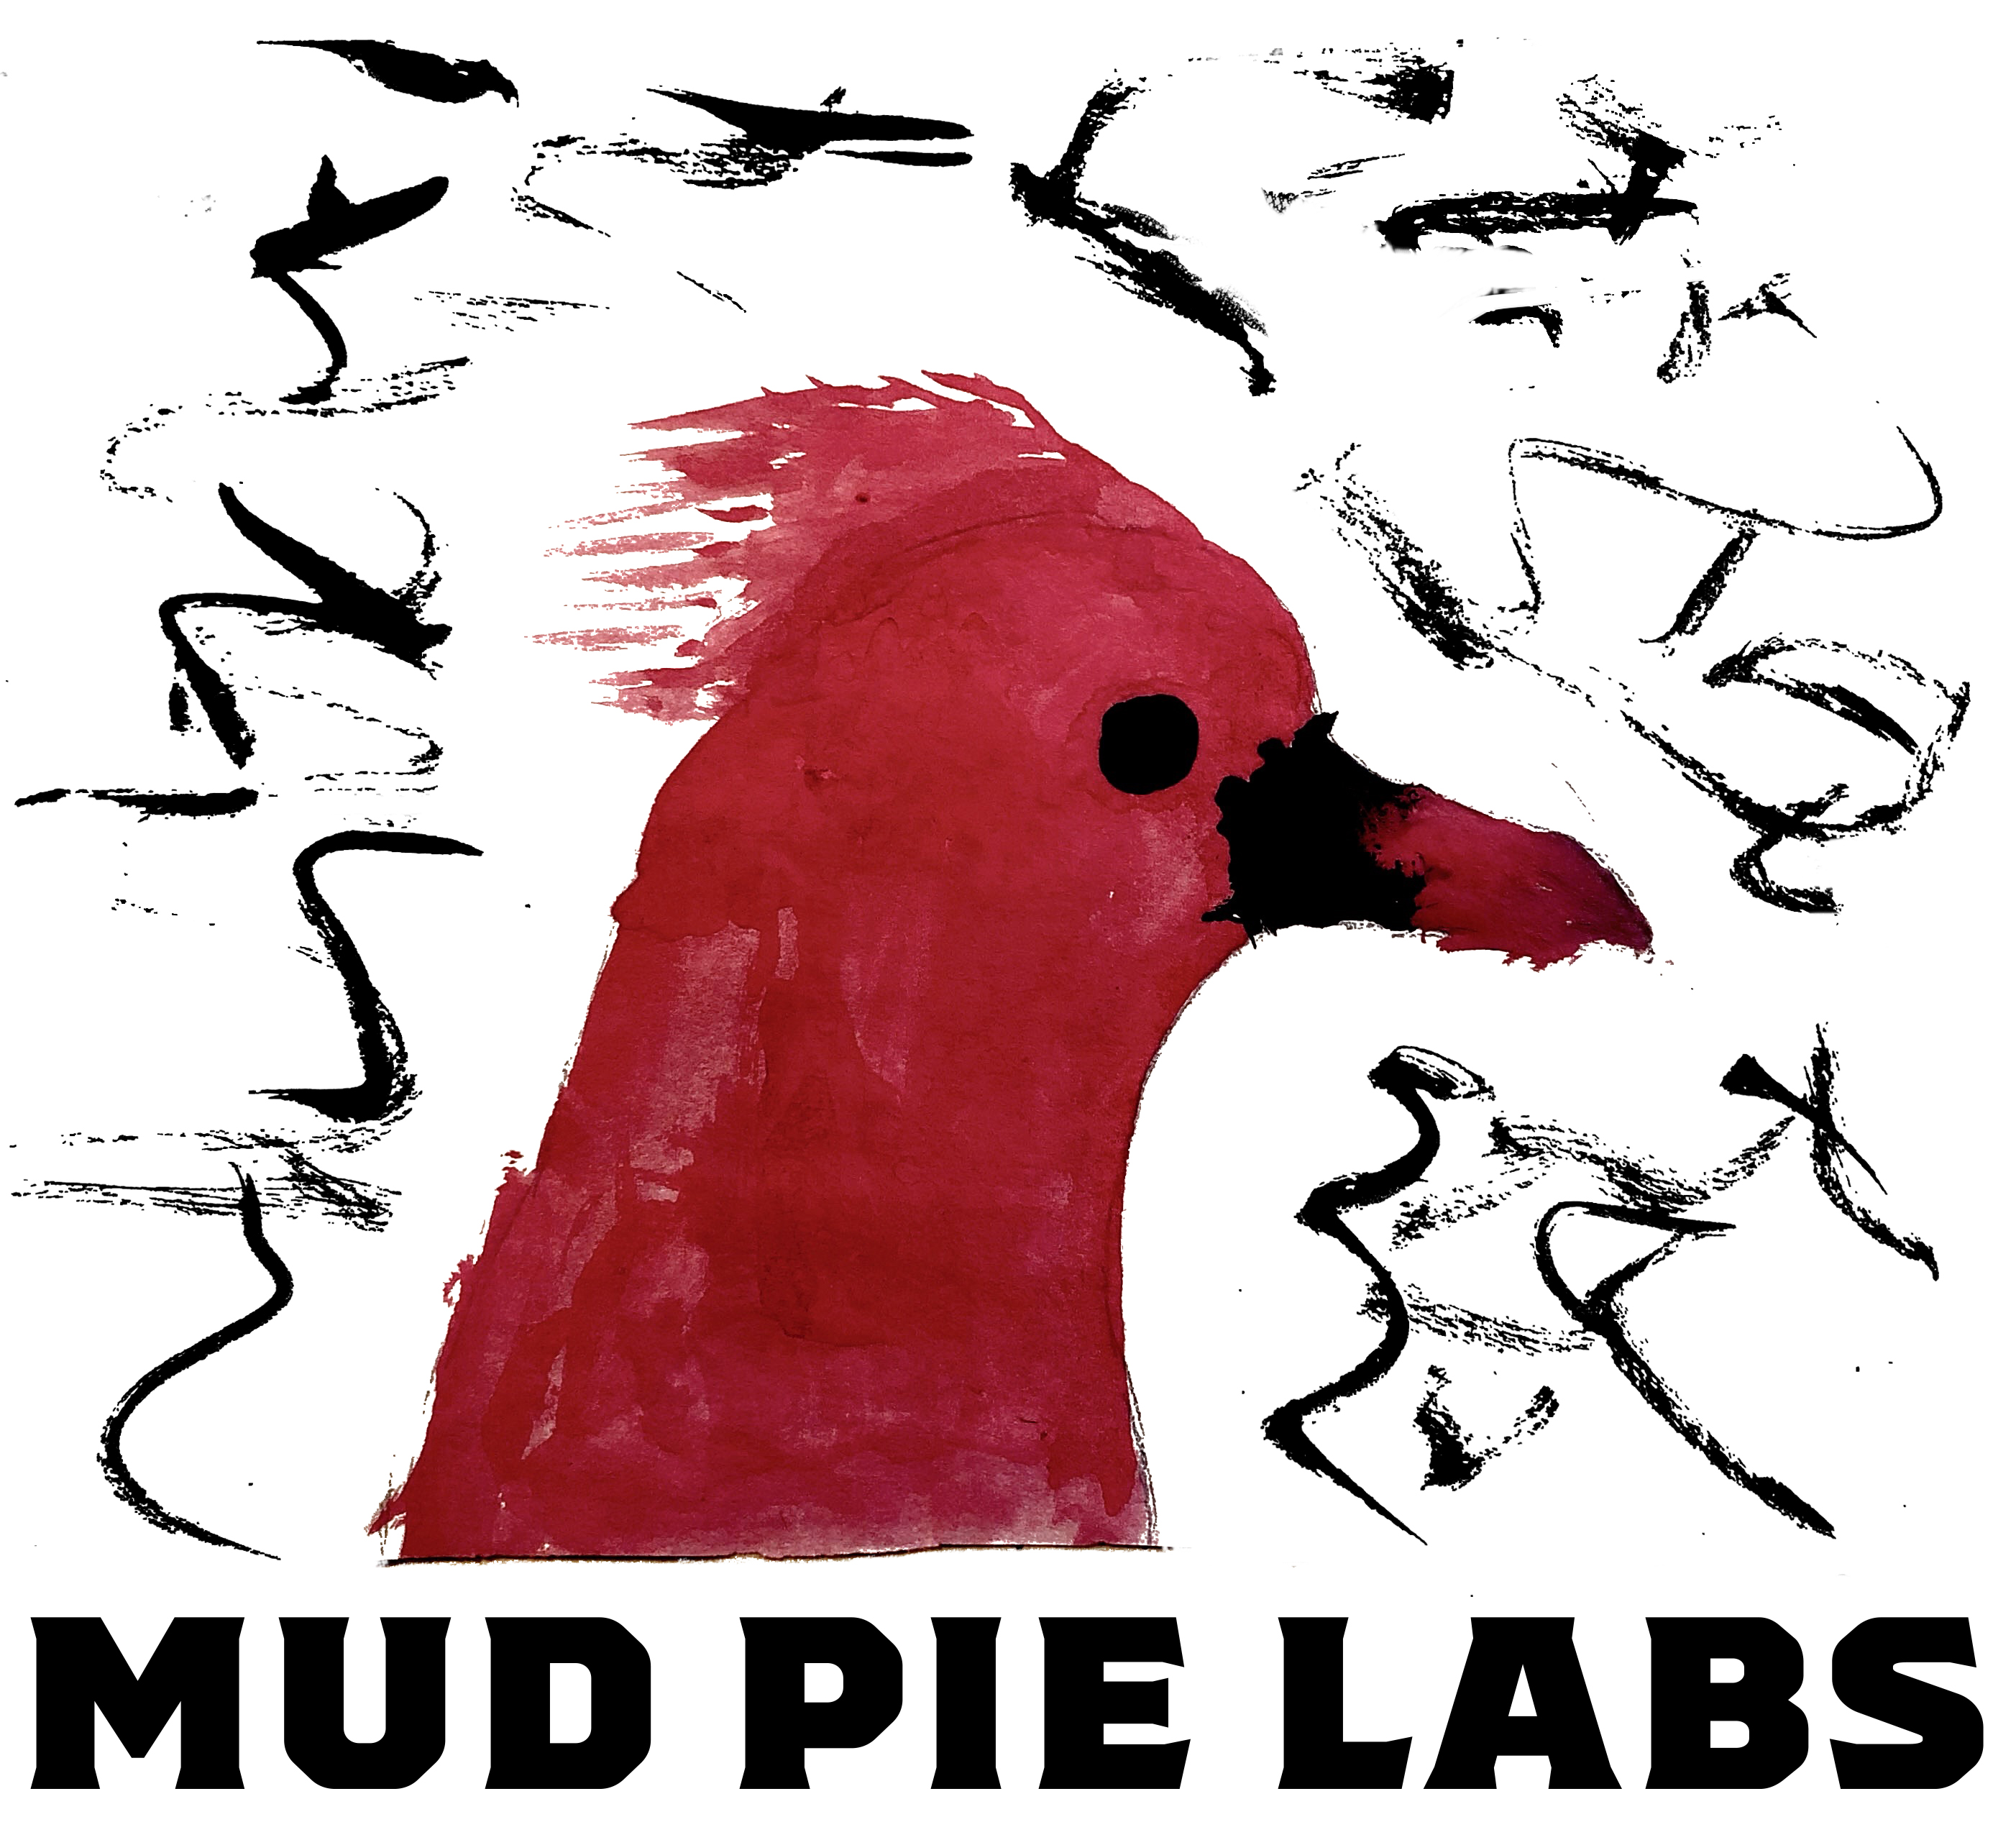 Mud Pie Labs: Animation studio founded by Dan Shefelman in 2020